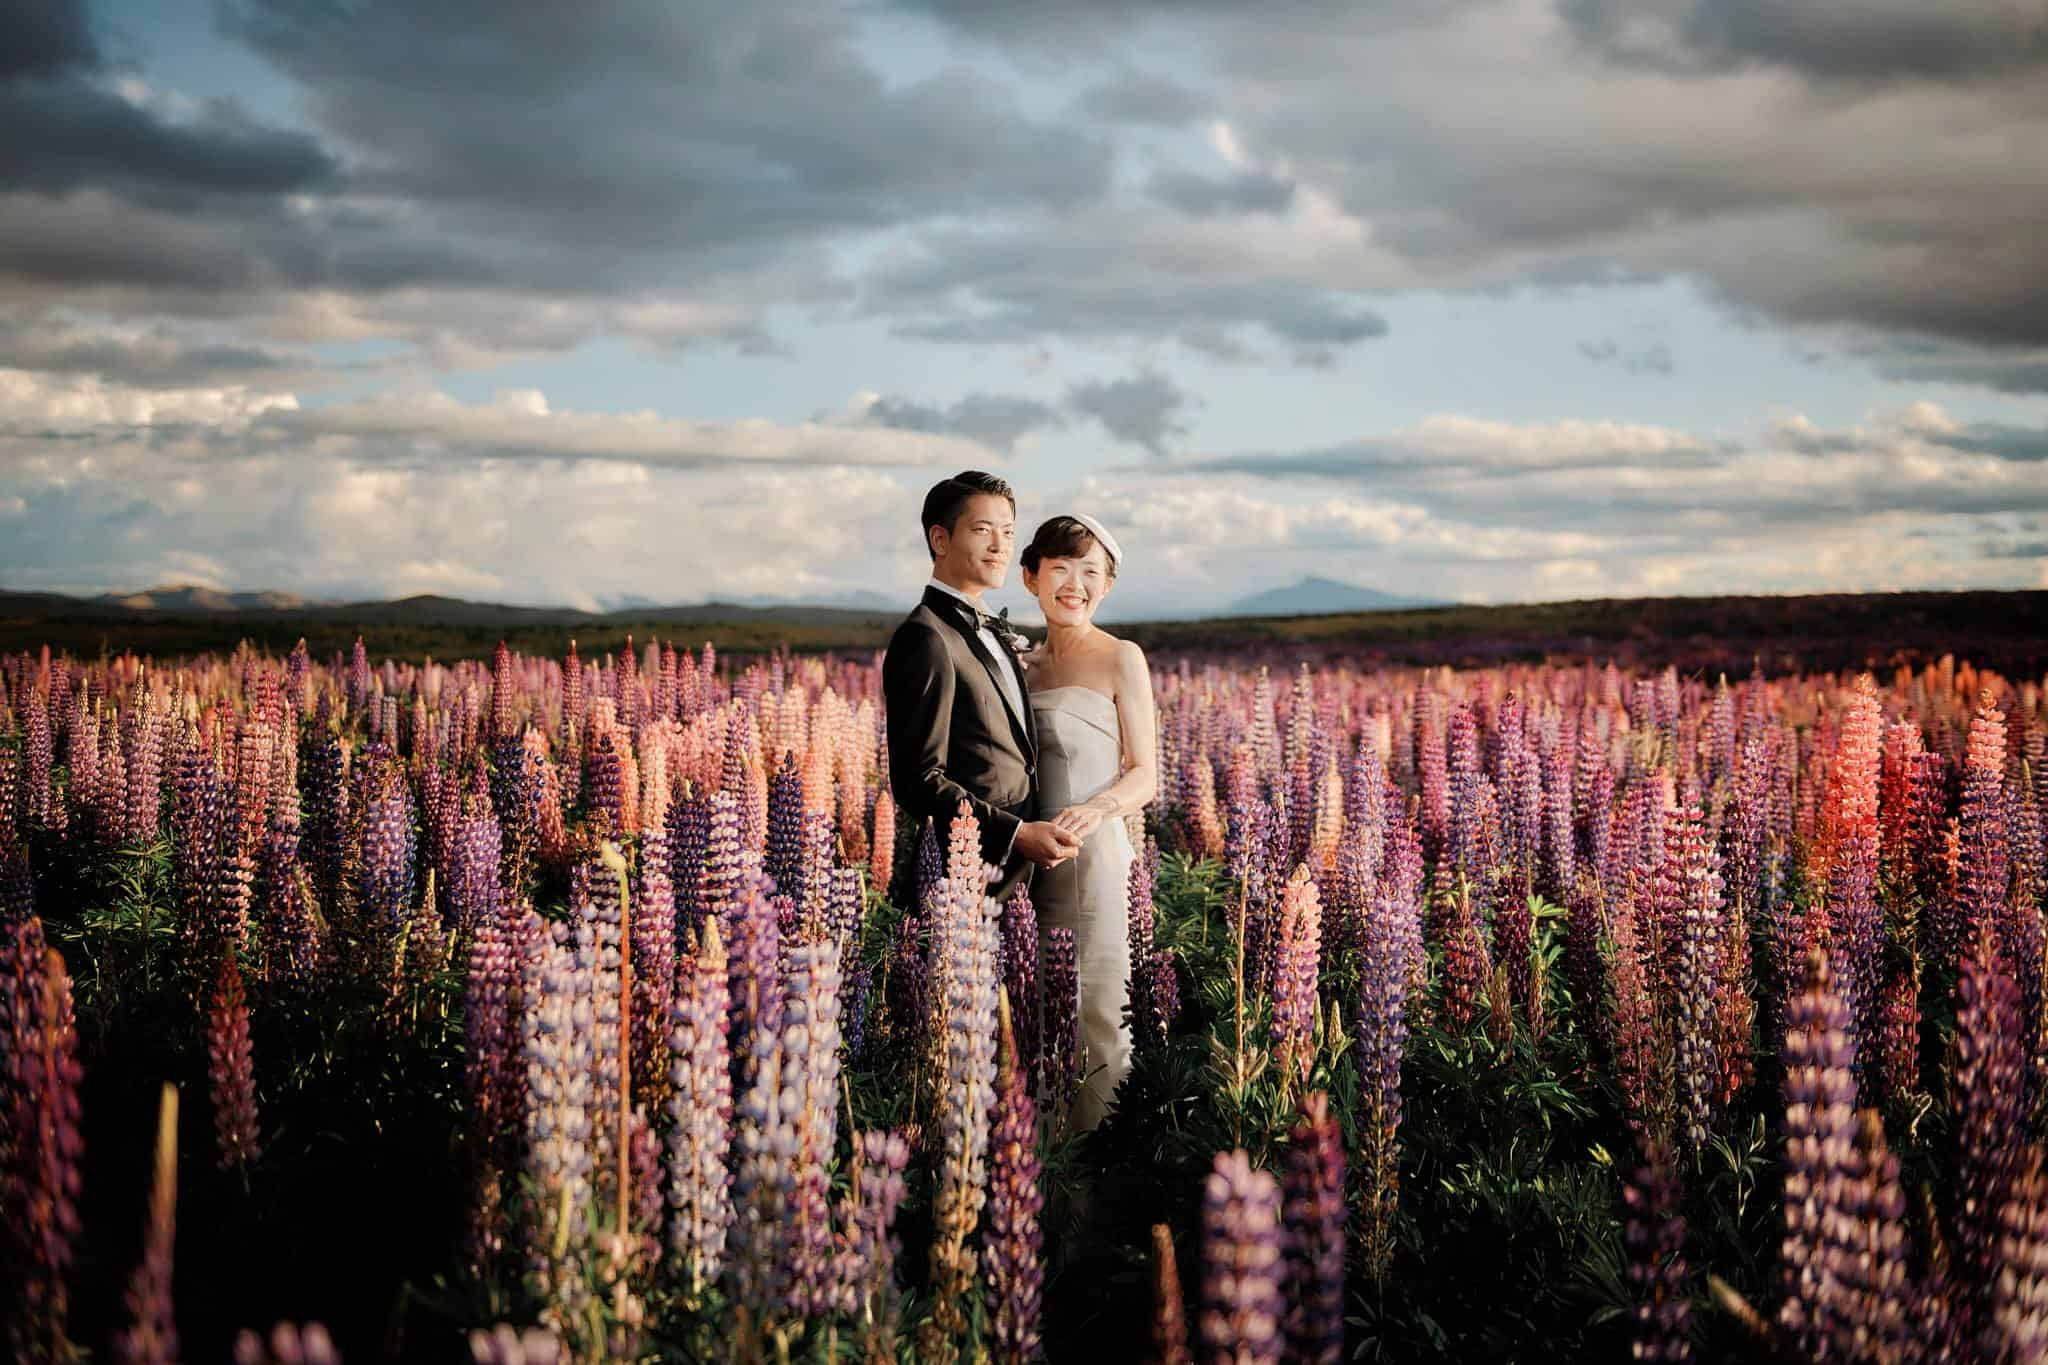 The Most Kickass Wedding Images from 2019